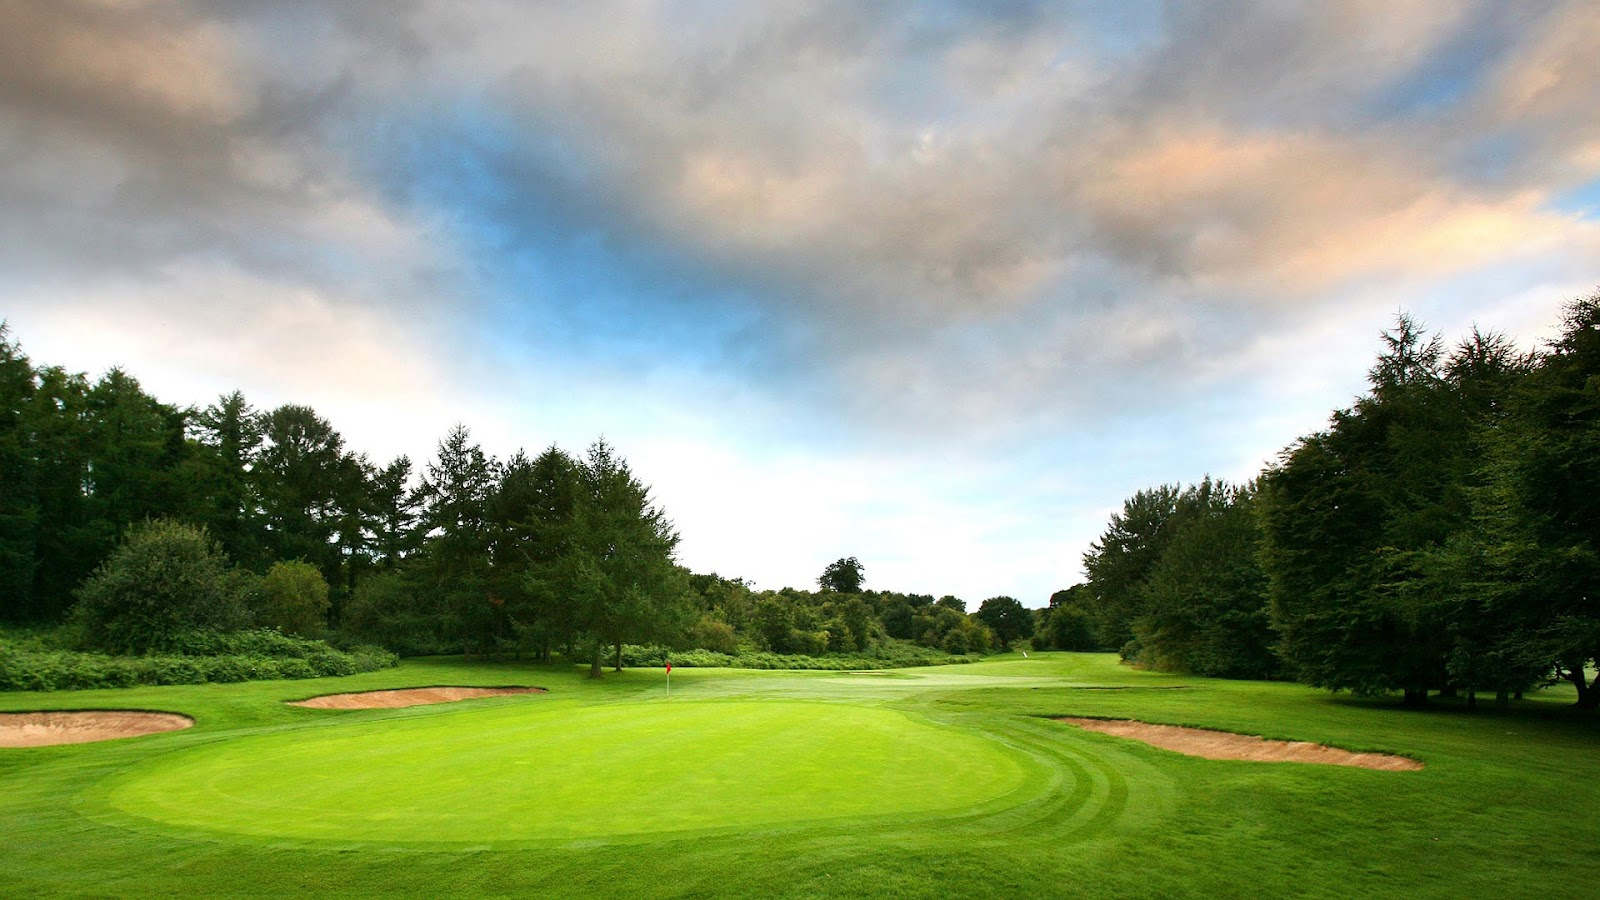 Golf background for computer with a golf course with sand and trees 1600x900